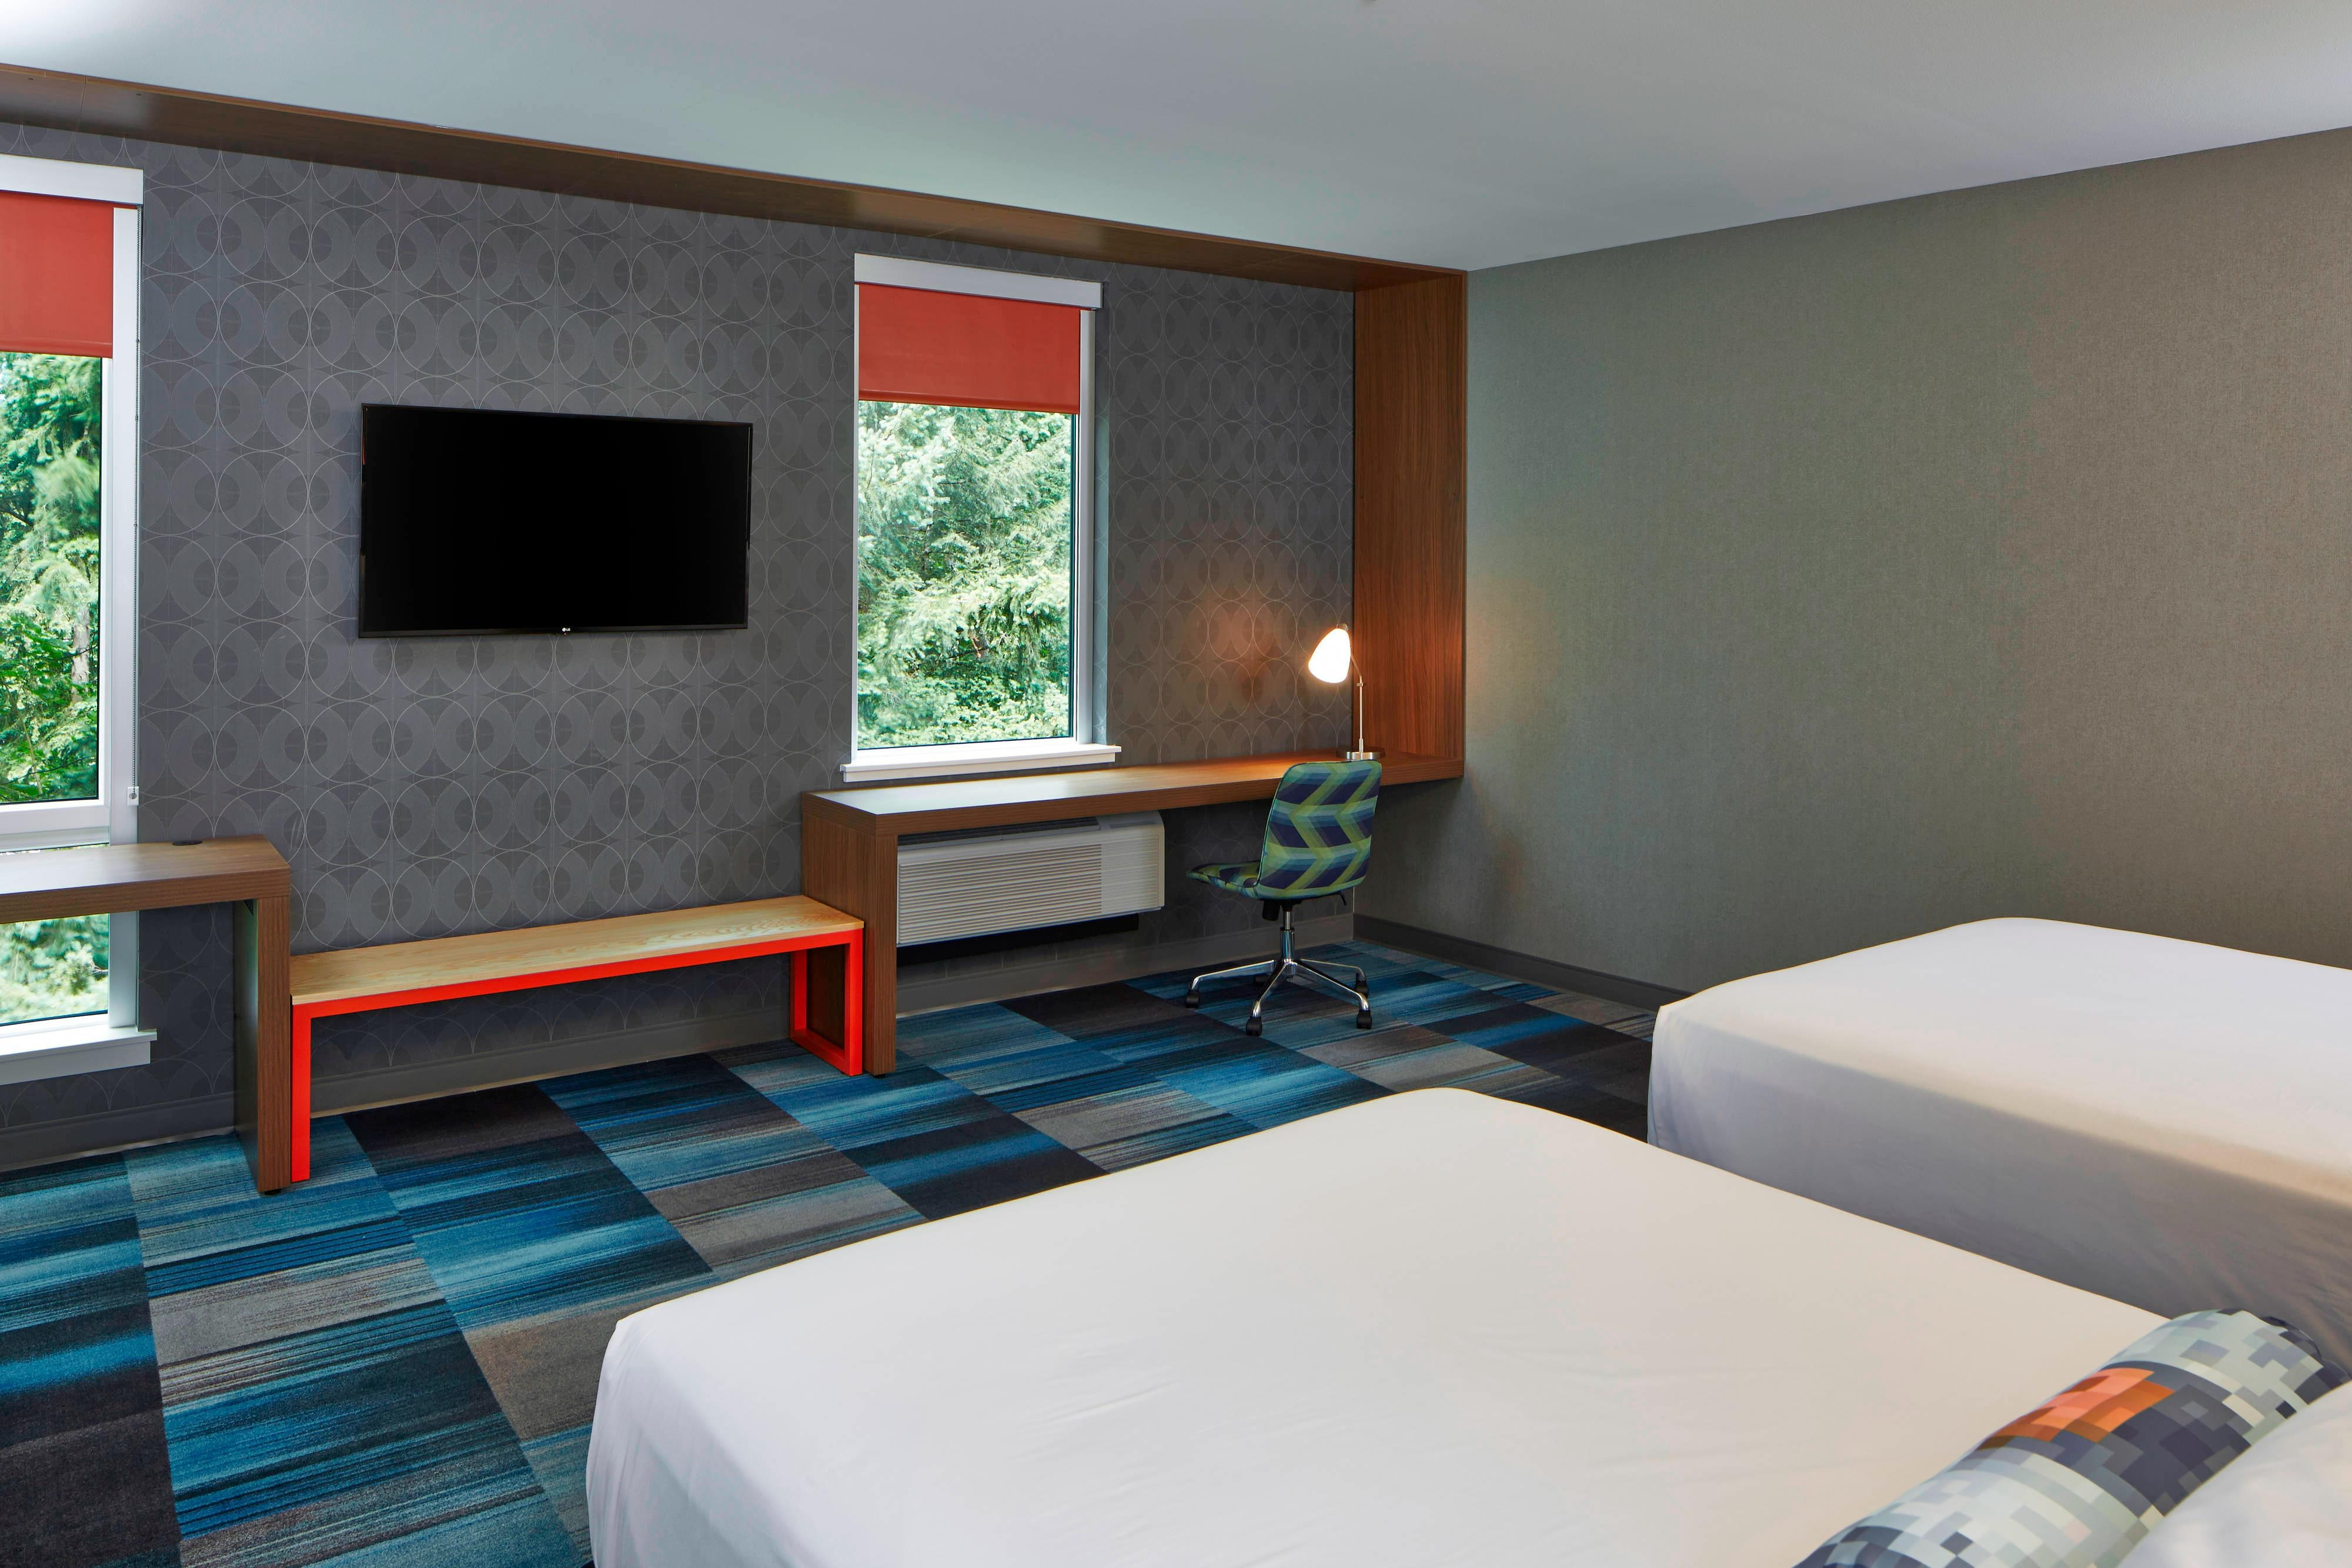 Aloft Queen/Queen - Guest Room